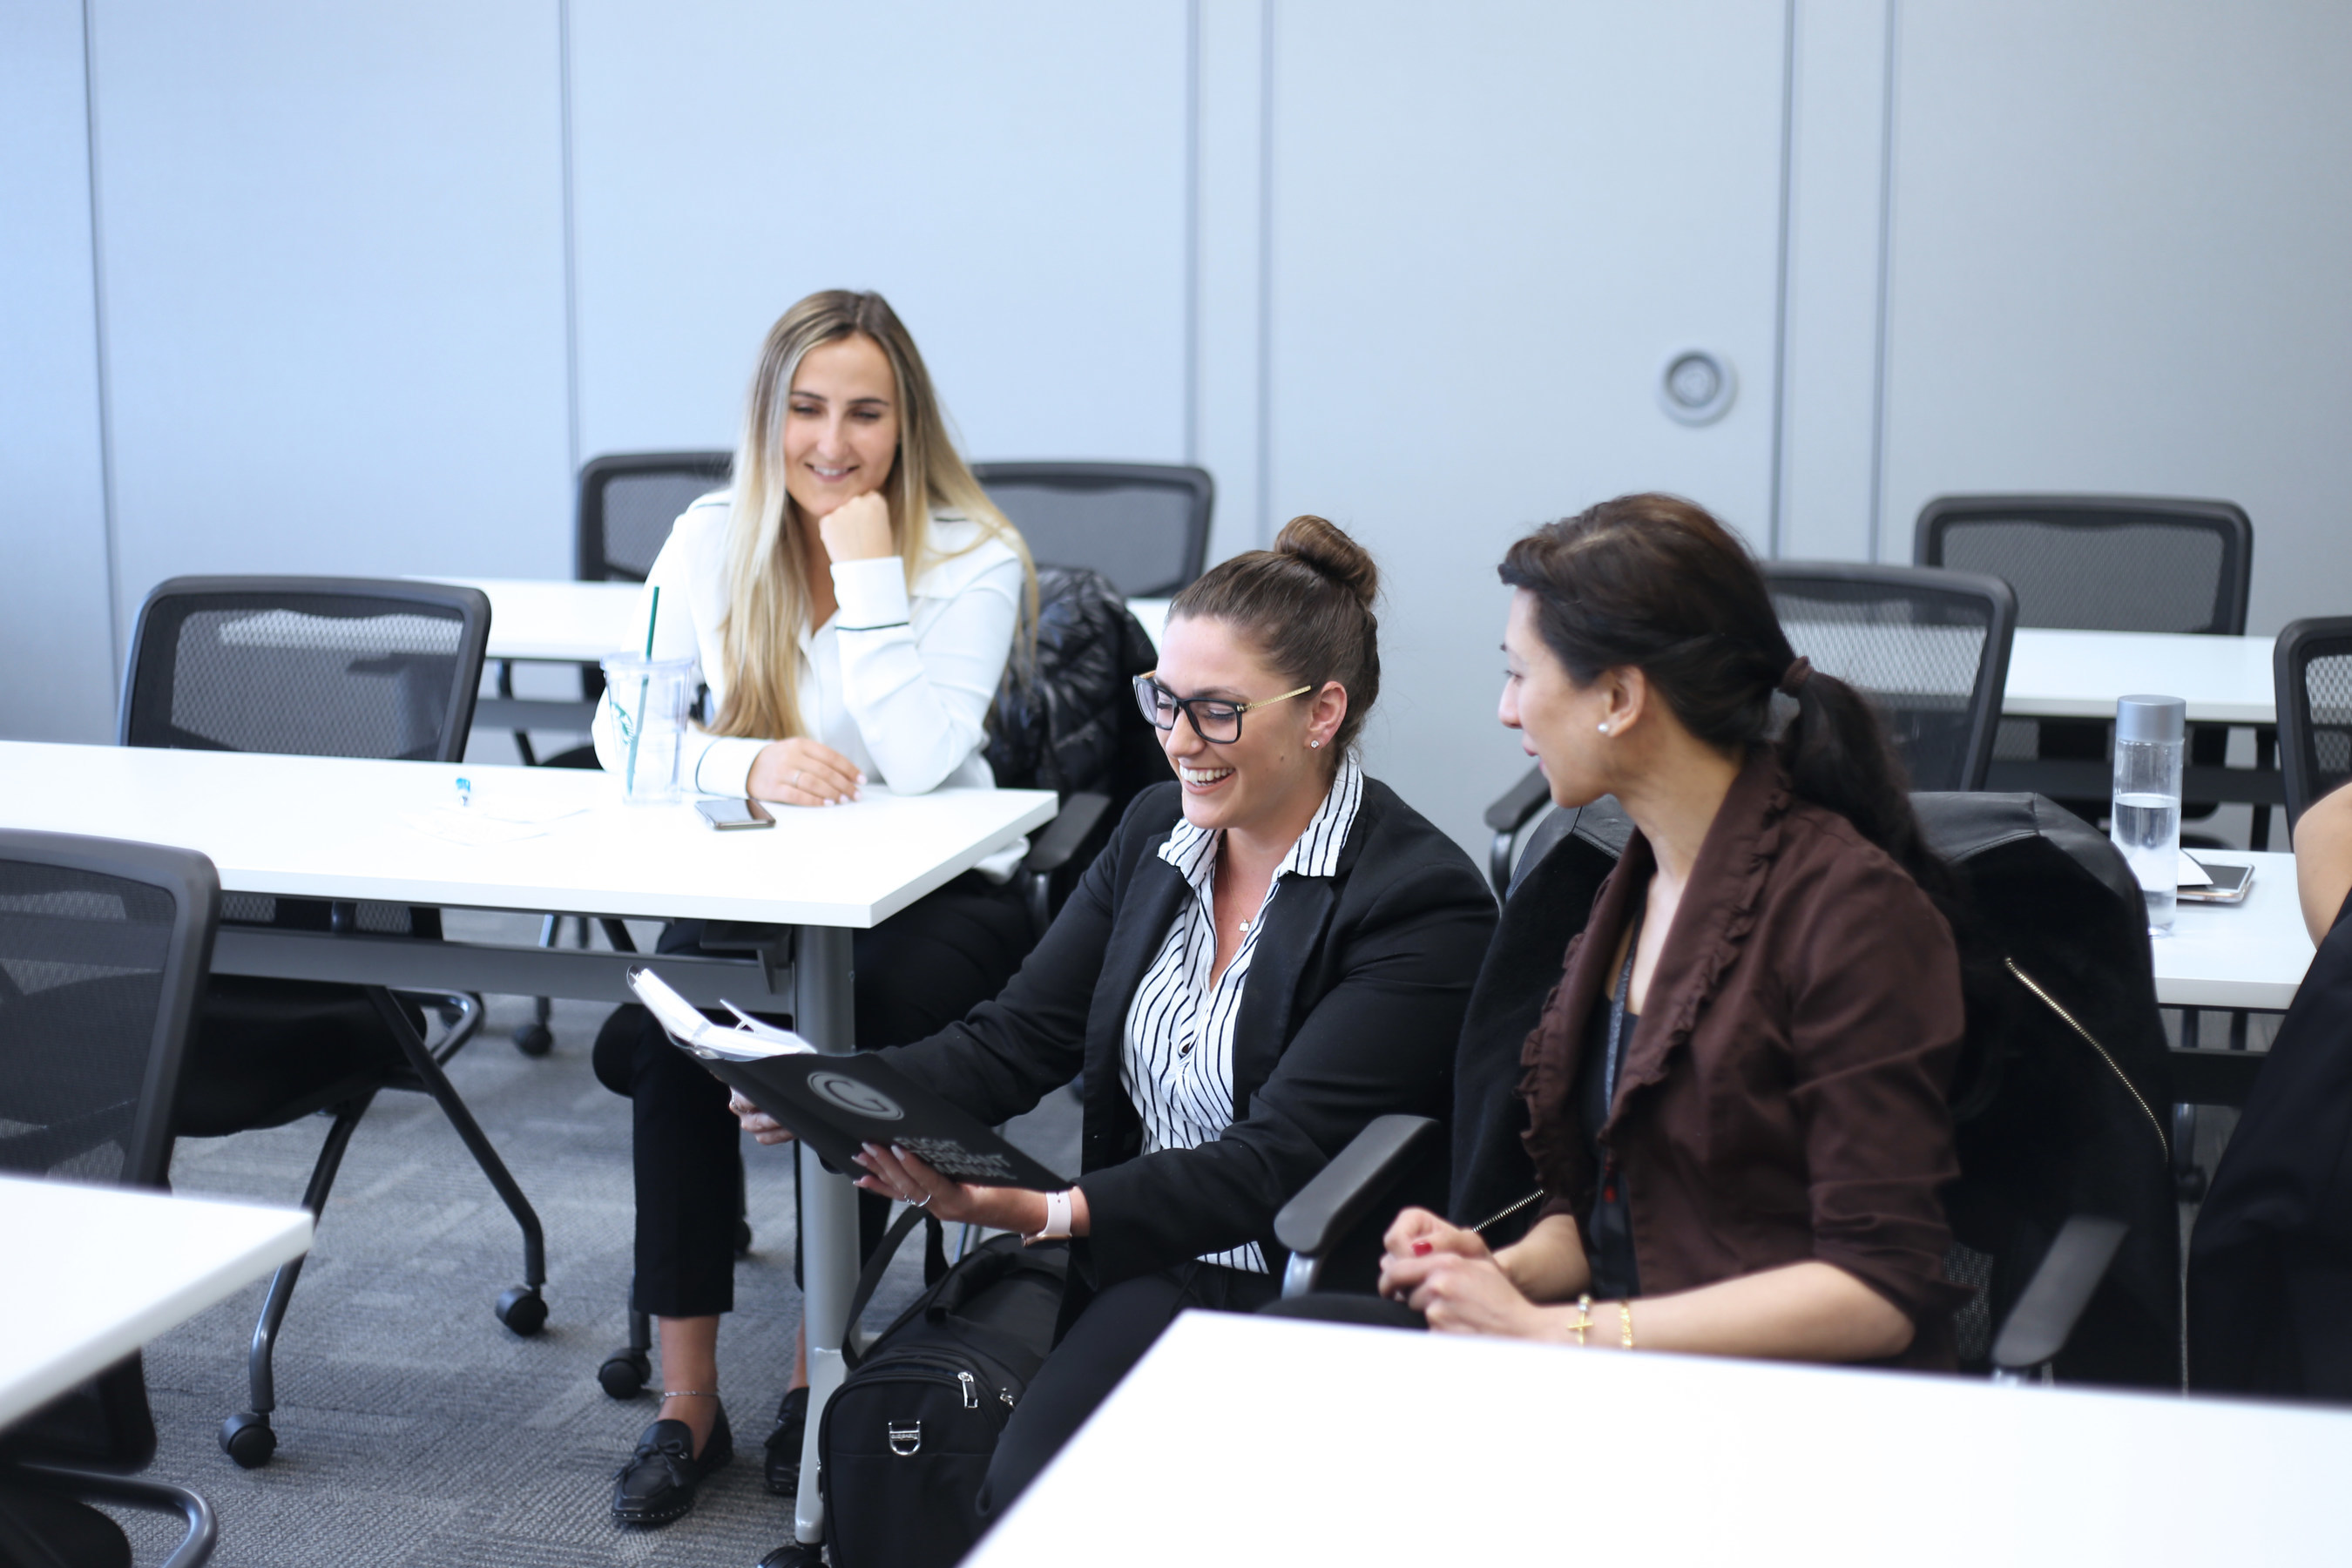 Air Georgian Flight Attendants (from left to right) Andrijka Welykanycz, Cassidy Scully, and Sarah Malinay actively participate in their Annual Recurrent Ground School Training at Air Georgian's Canadian Airline Professional Development Academy (CAPDA). (CNW Group/Air Georgian Limited)